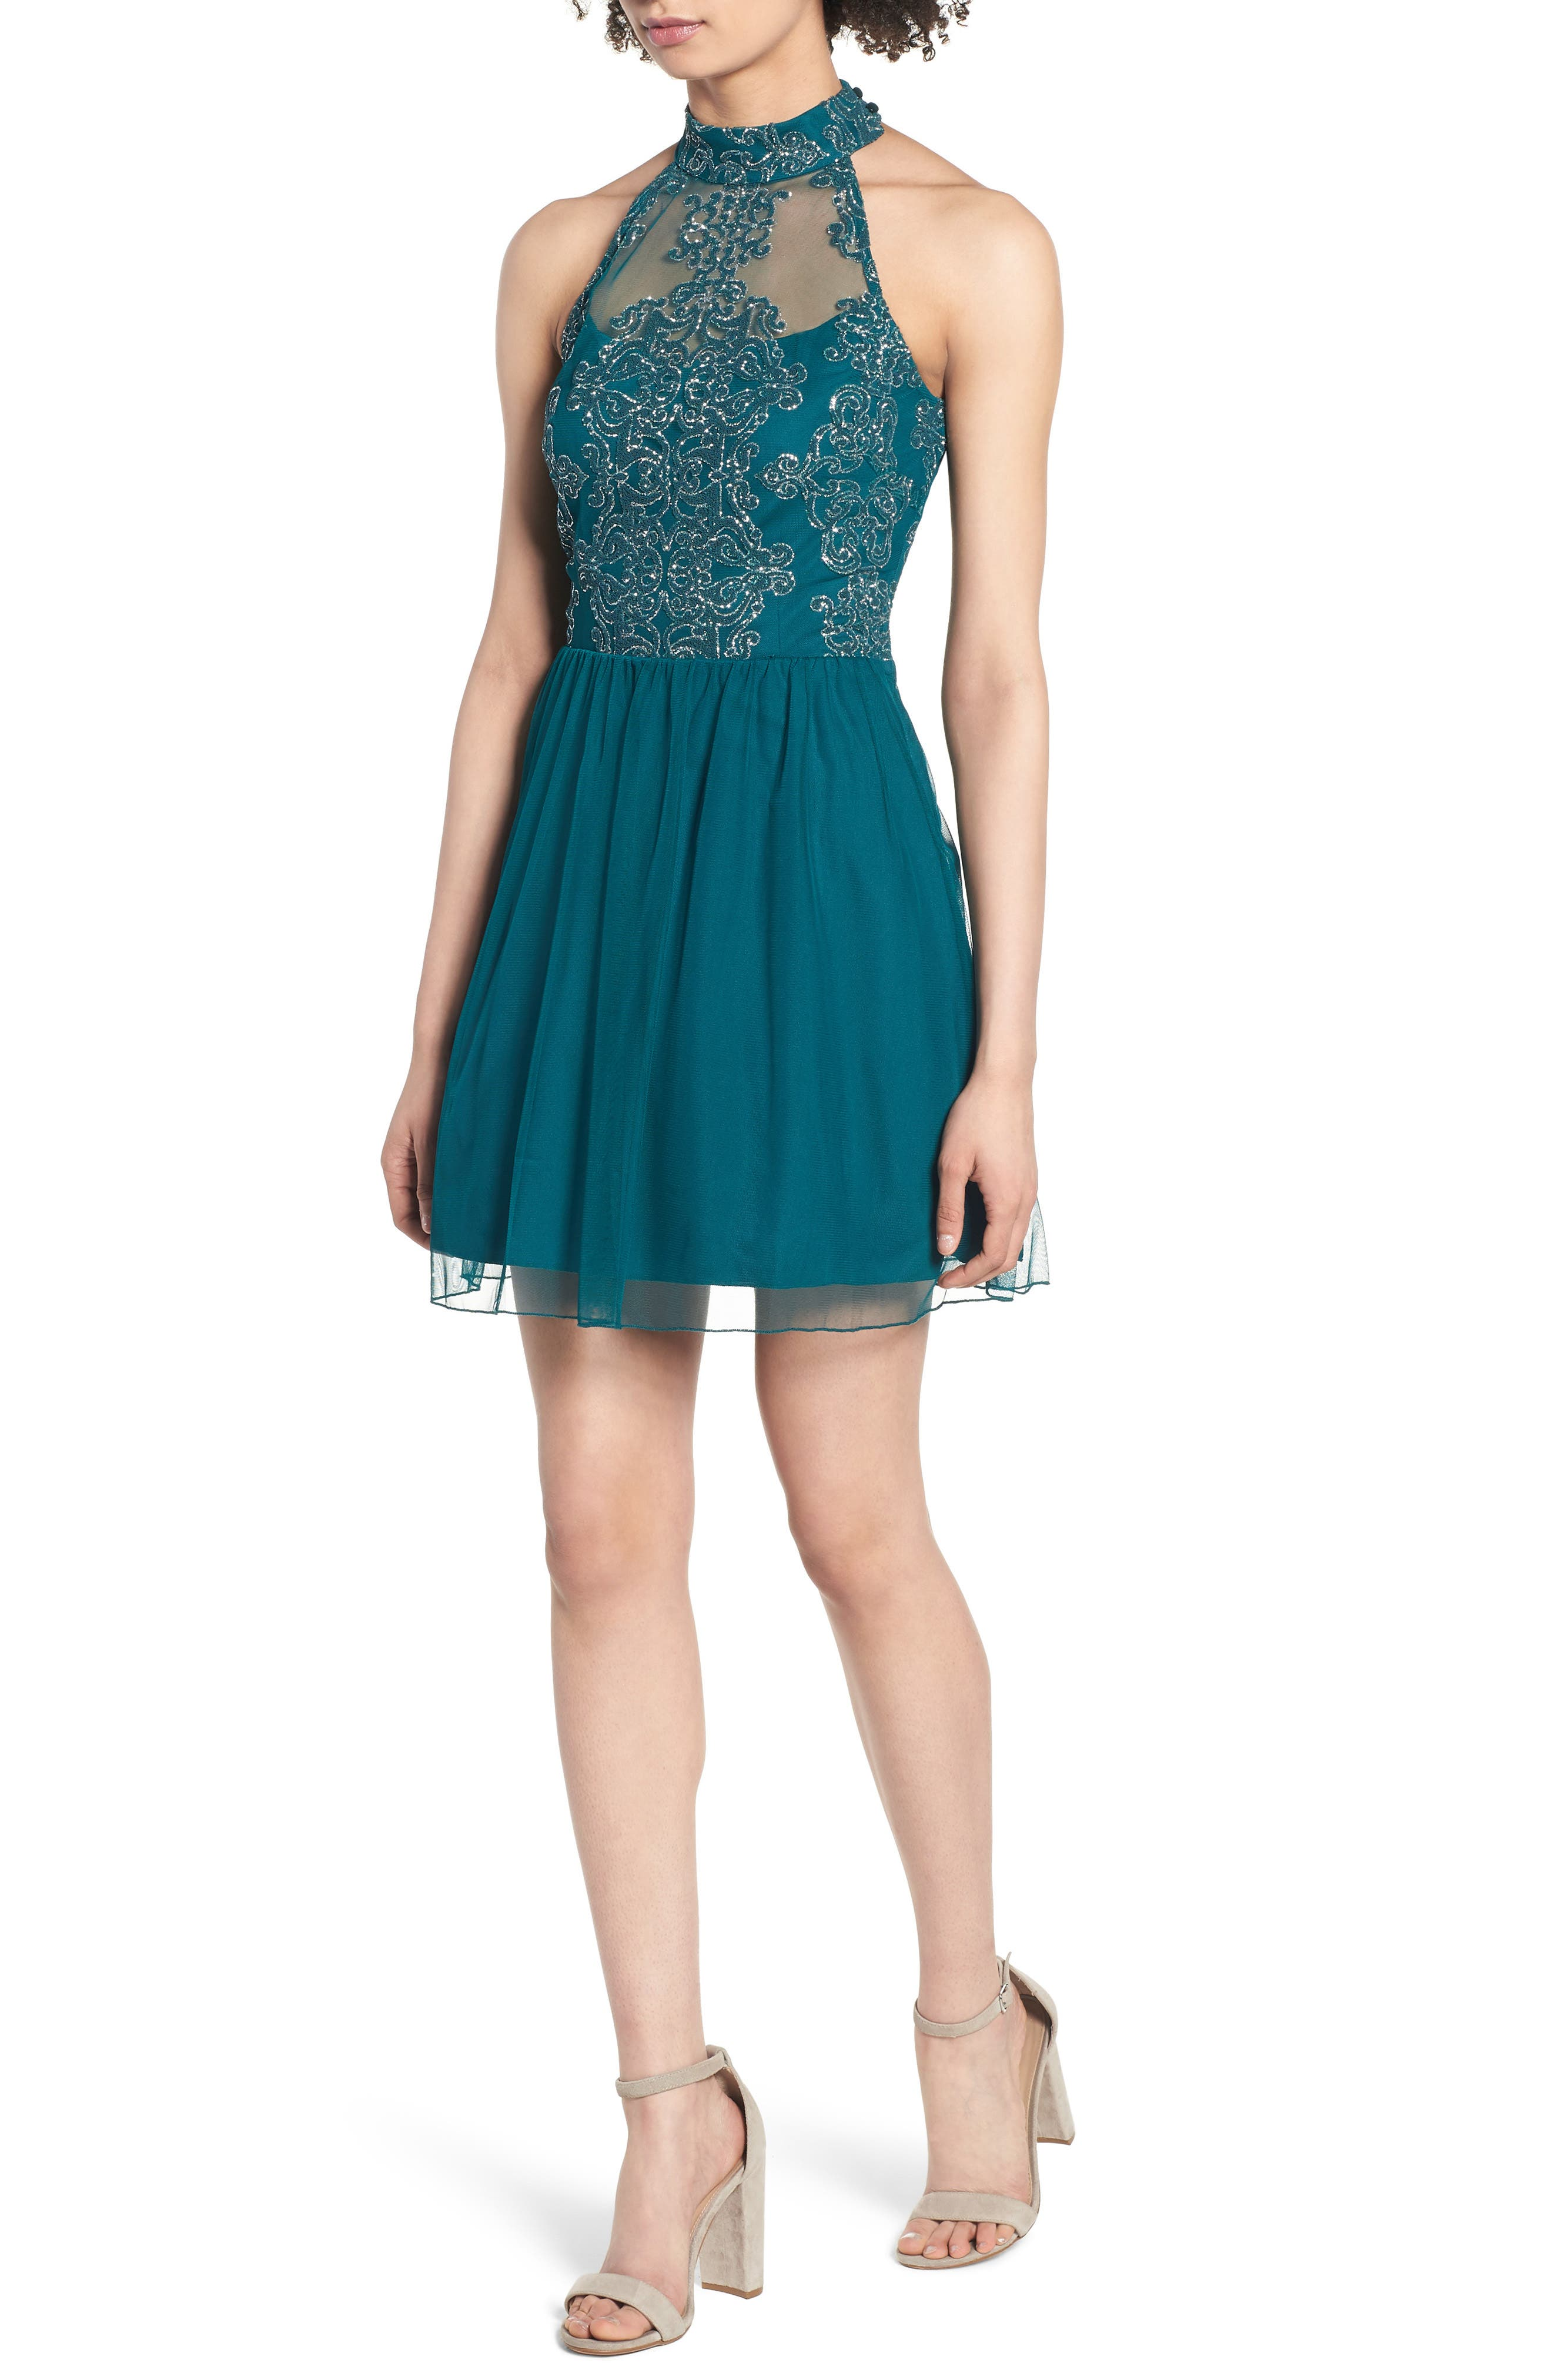 SPEECHLESS Lace Fit & Flare Dress, Main, color, EMERALD